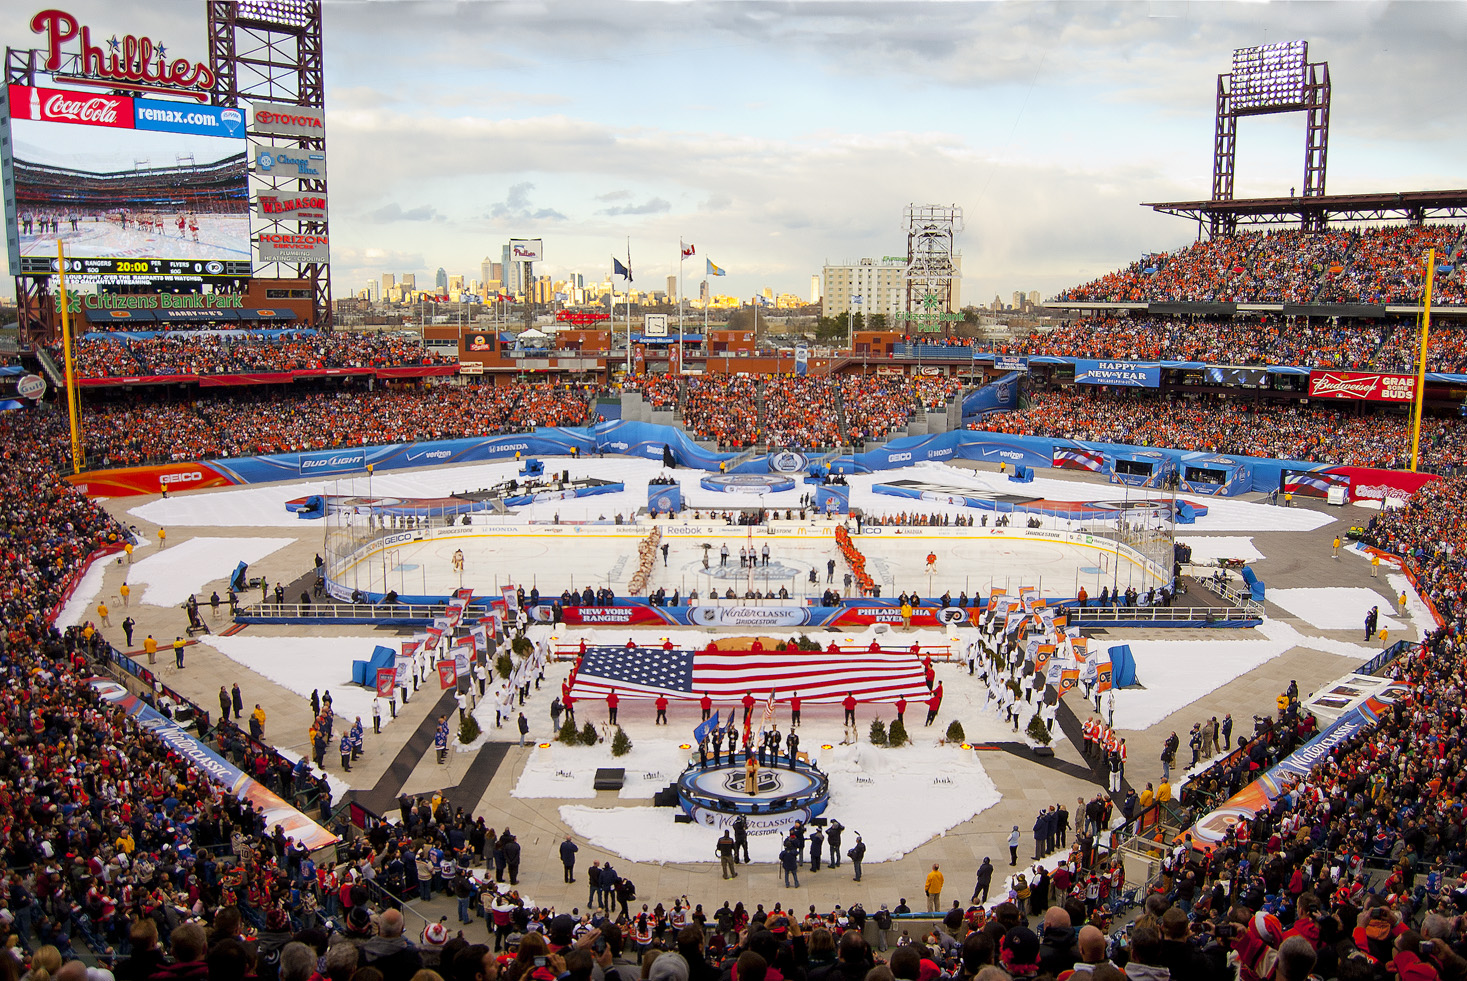 10 winter classic at citizens bank park - weird sports venues